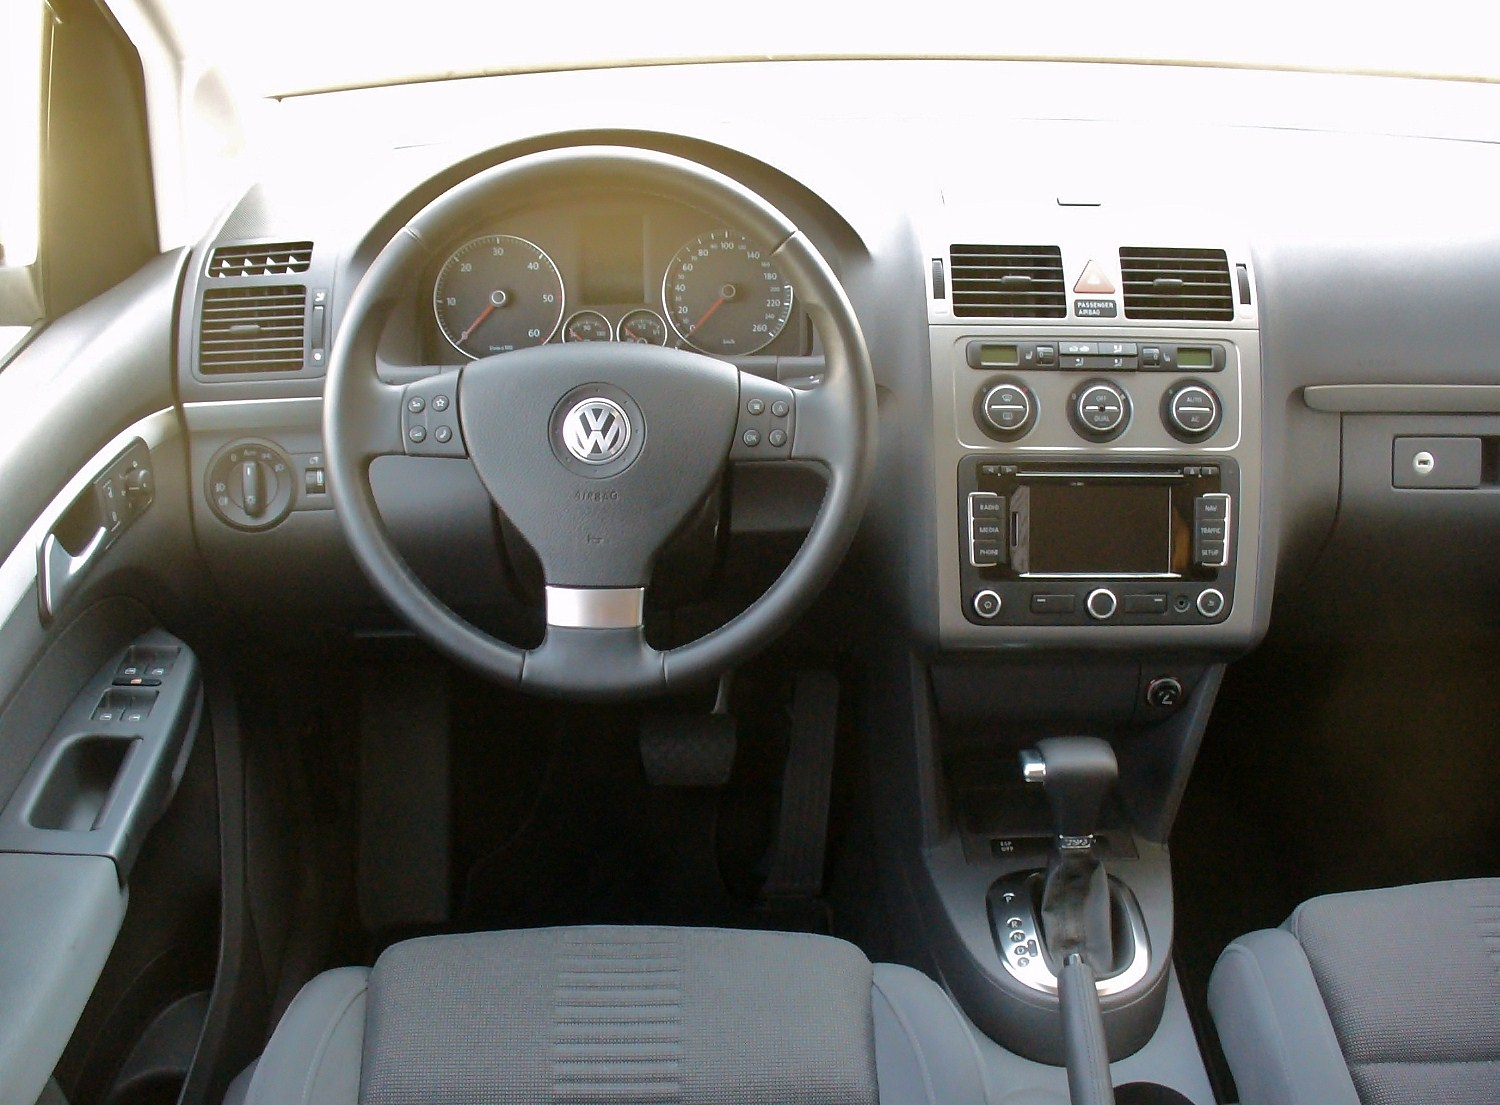 File:VW Touran 2.0 TDI DSG Highline Deep Black Interieur ...